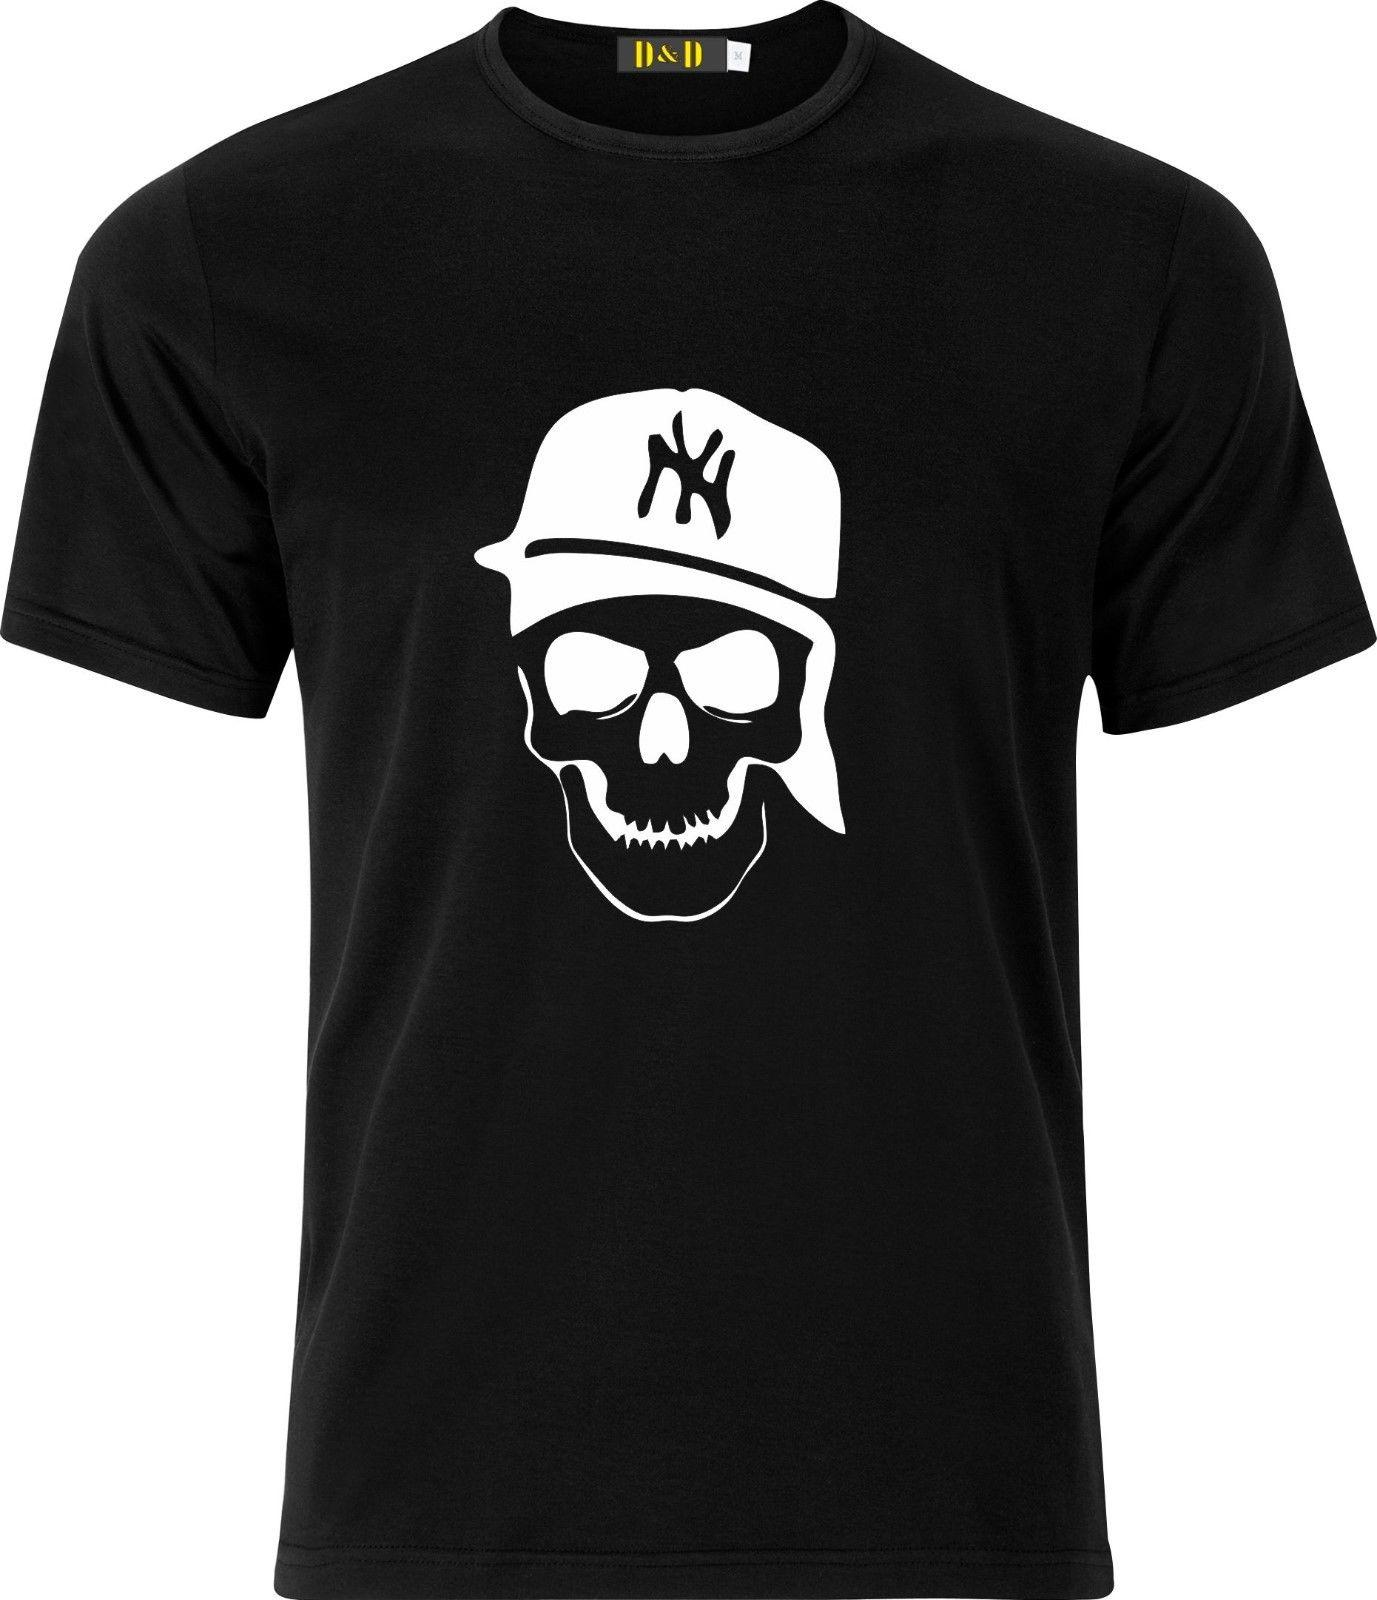 NEW YORK GANSTER SKULL AND HAT HIP HOP FUNNY HUMOR GIFT XMAS COTTON T SHIRT